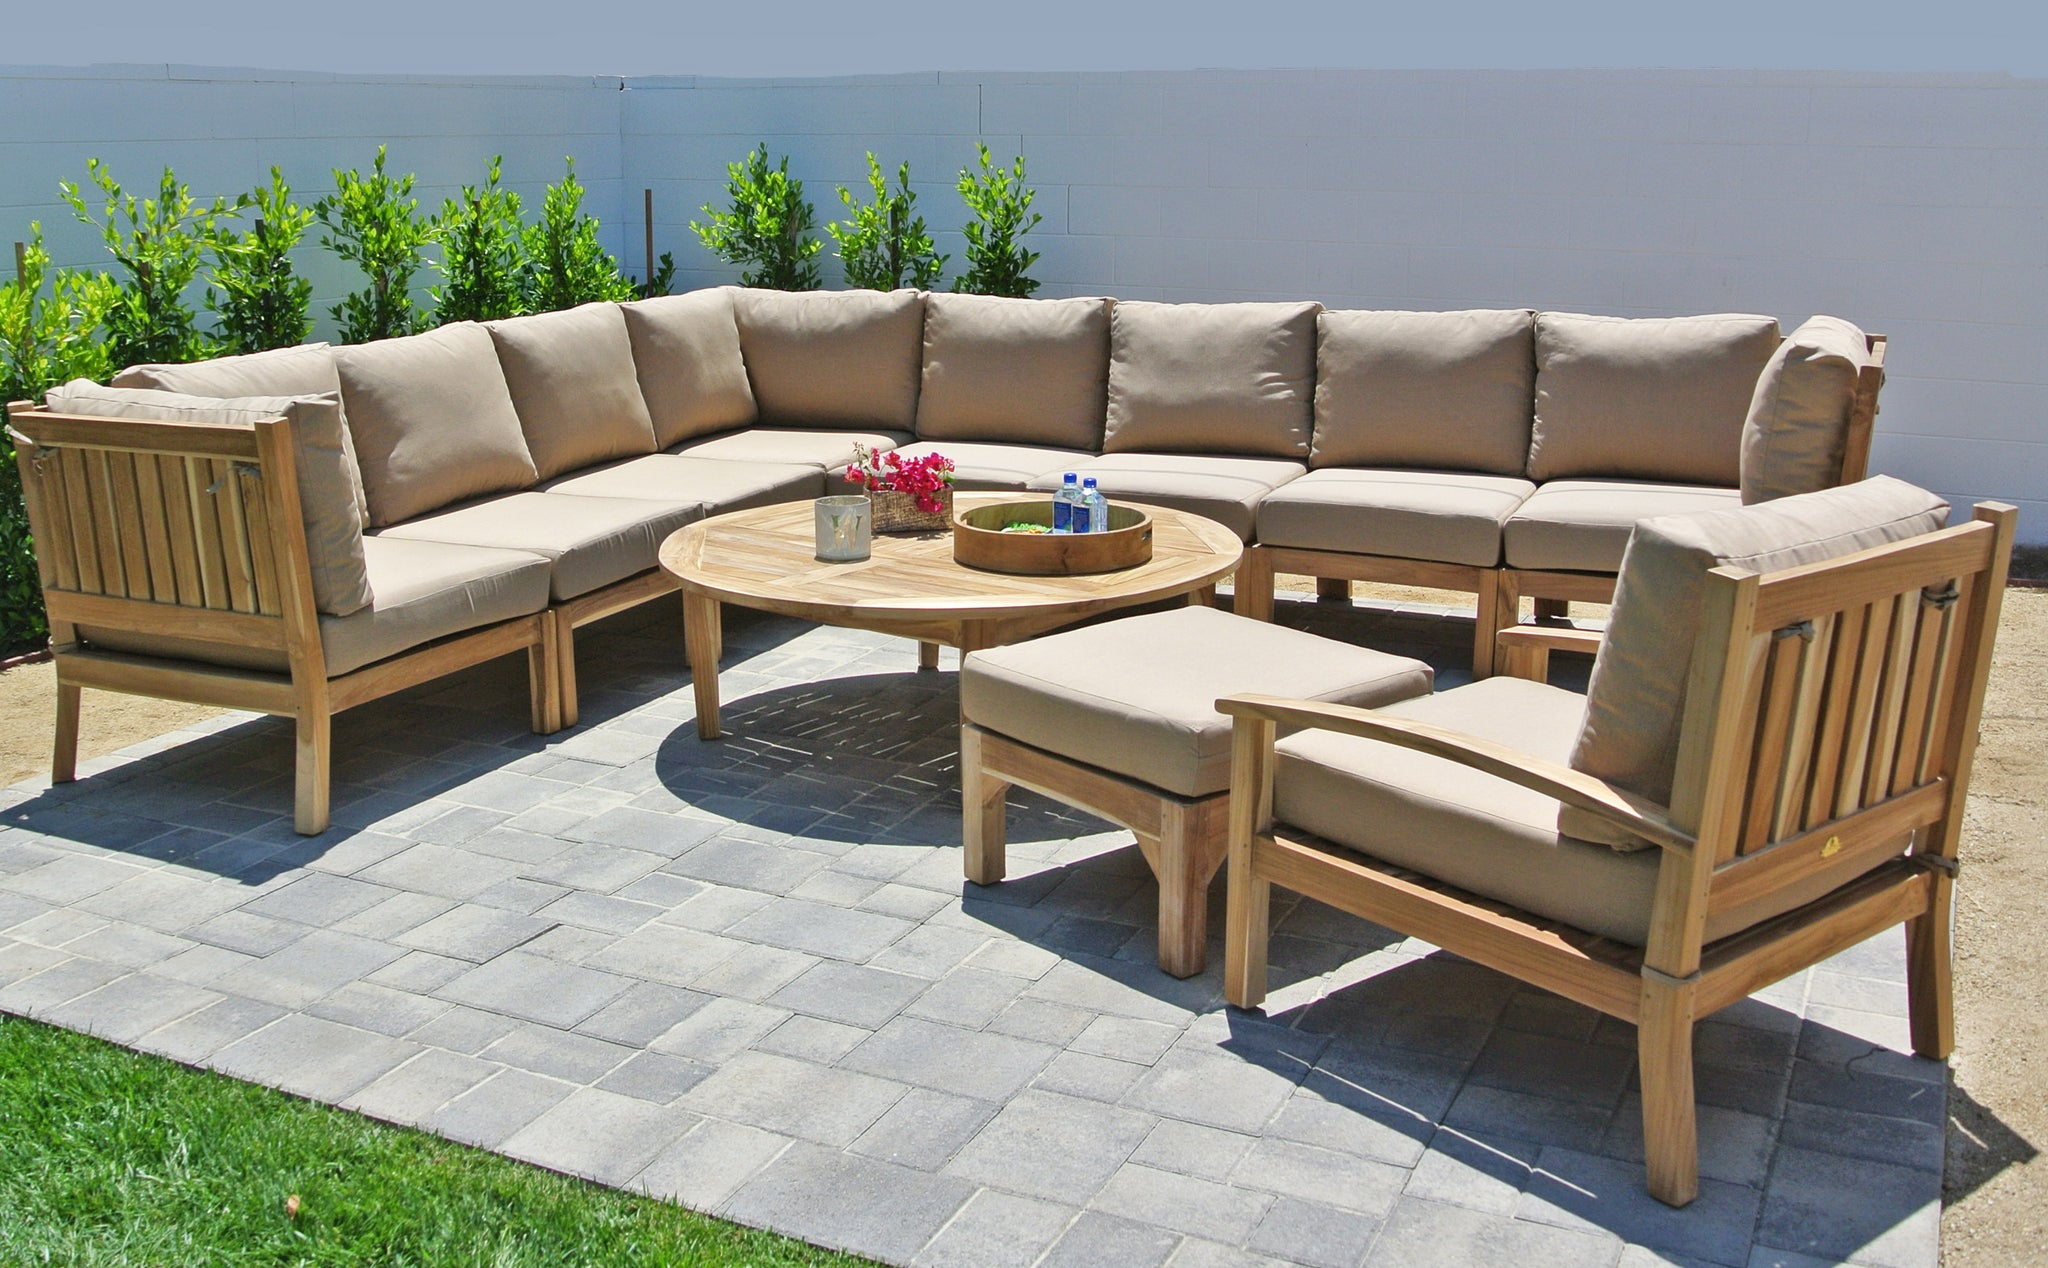 Teak Outdoor Patio Furniture Sectional With Sunbrella Cushion ...